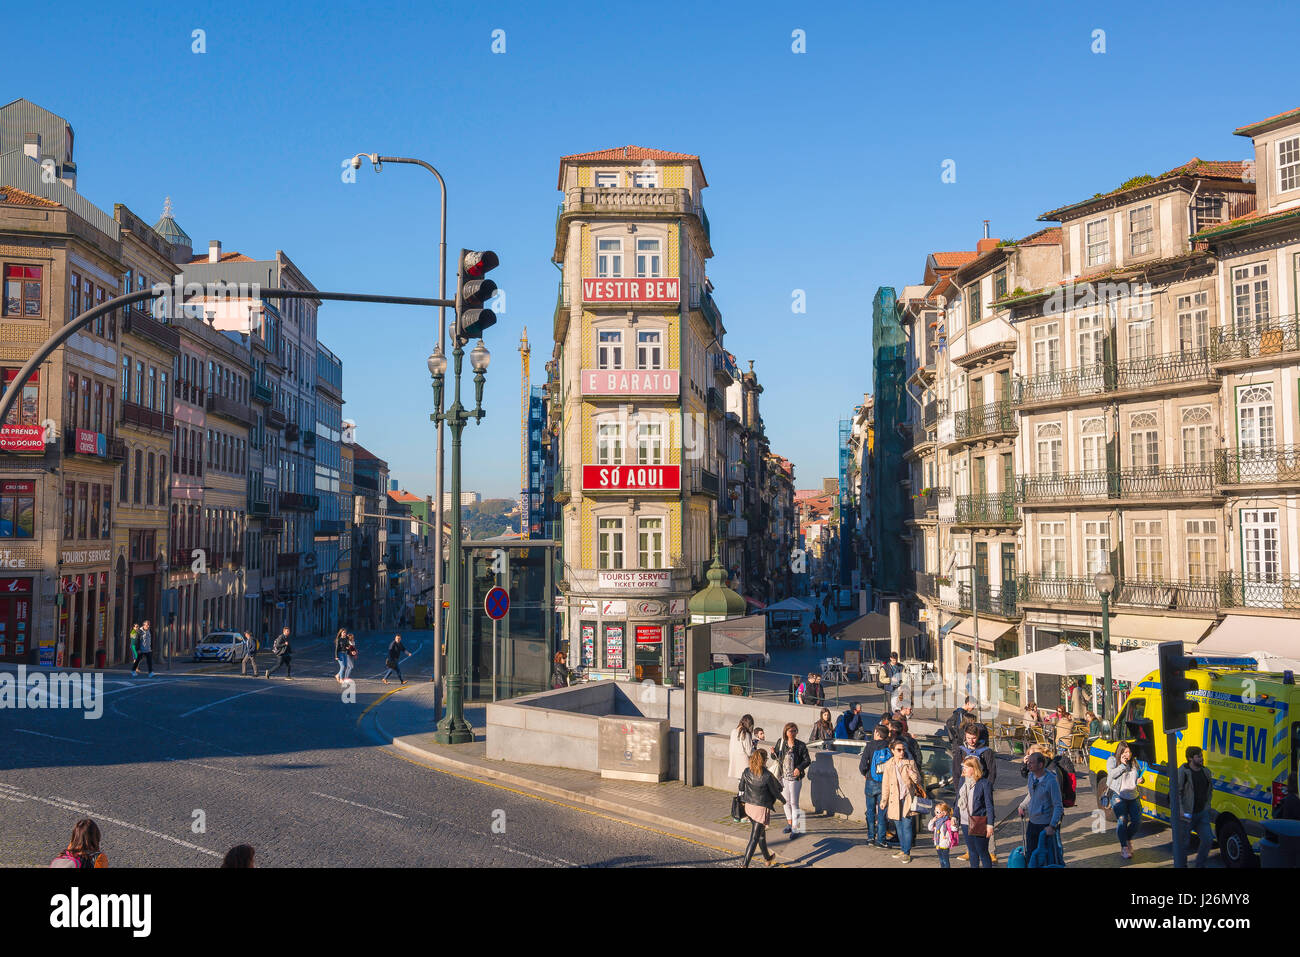 Porto Portugal center, junction of two great thoroughfares in the center of Porto - the Rua das Flores(r) and Rua Stock Photo